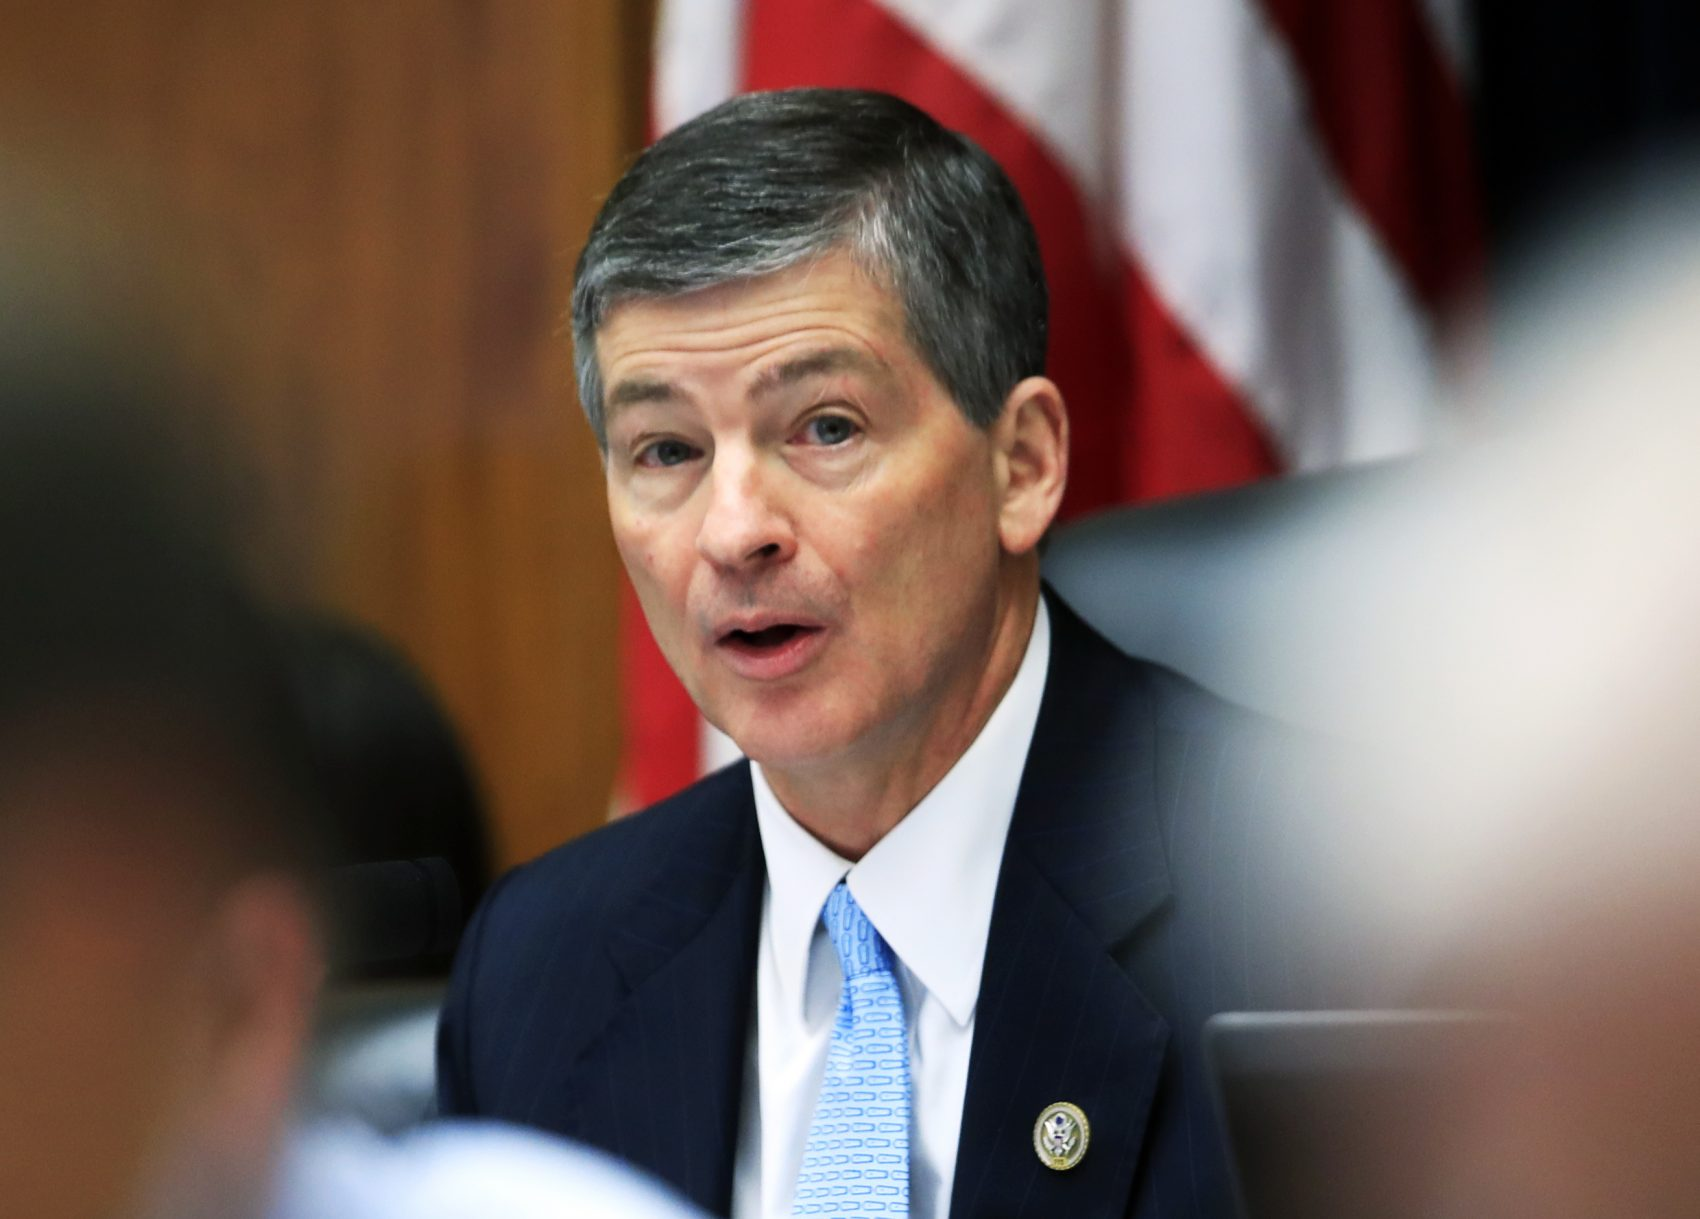 House Financial Services Committee Chairman Rep. Jeb Hensarling, R-Texas speaks on Capitol Hill in Washington, Tuesday, May 2, 2017, during the committee's hearing on overhauling the nation's financial rules.  (AP Photo/Manuel Balce Ceneta)